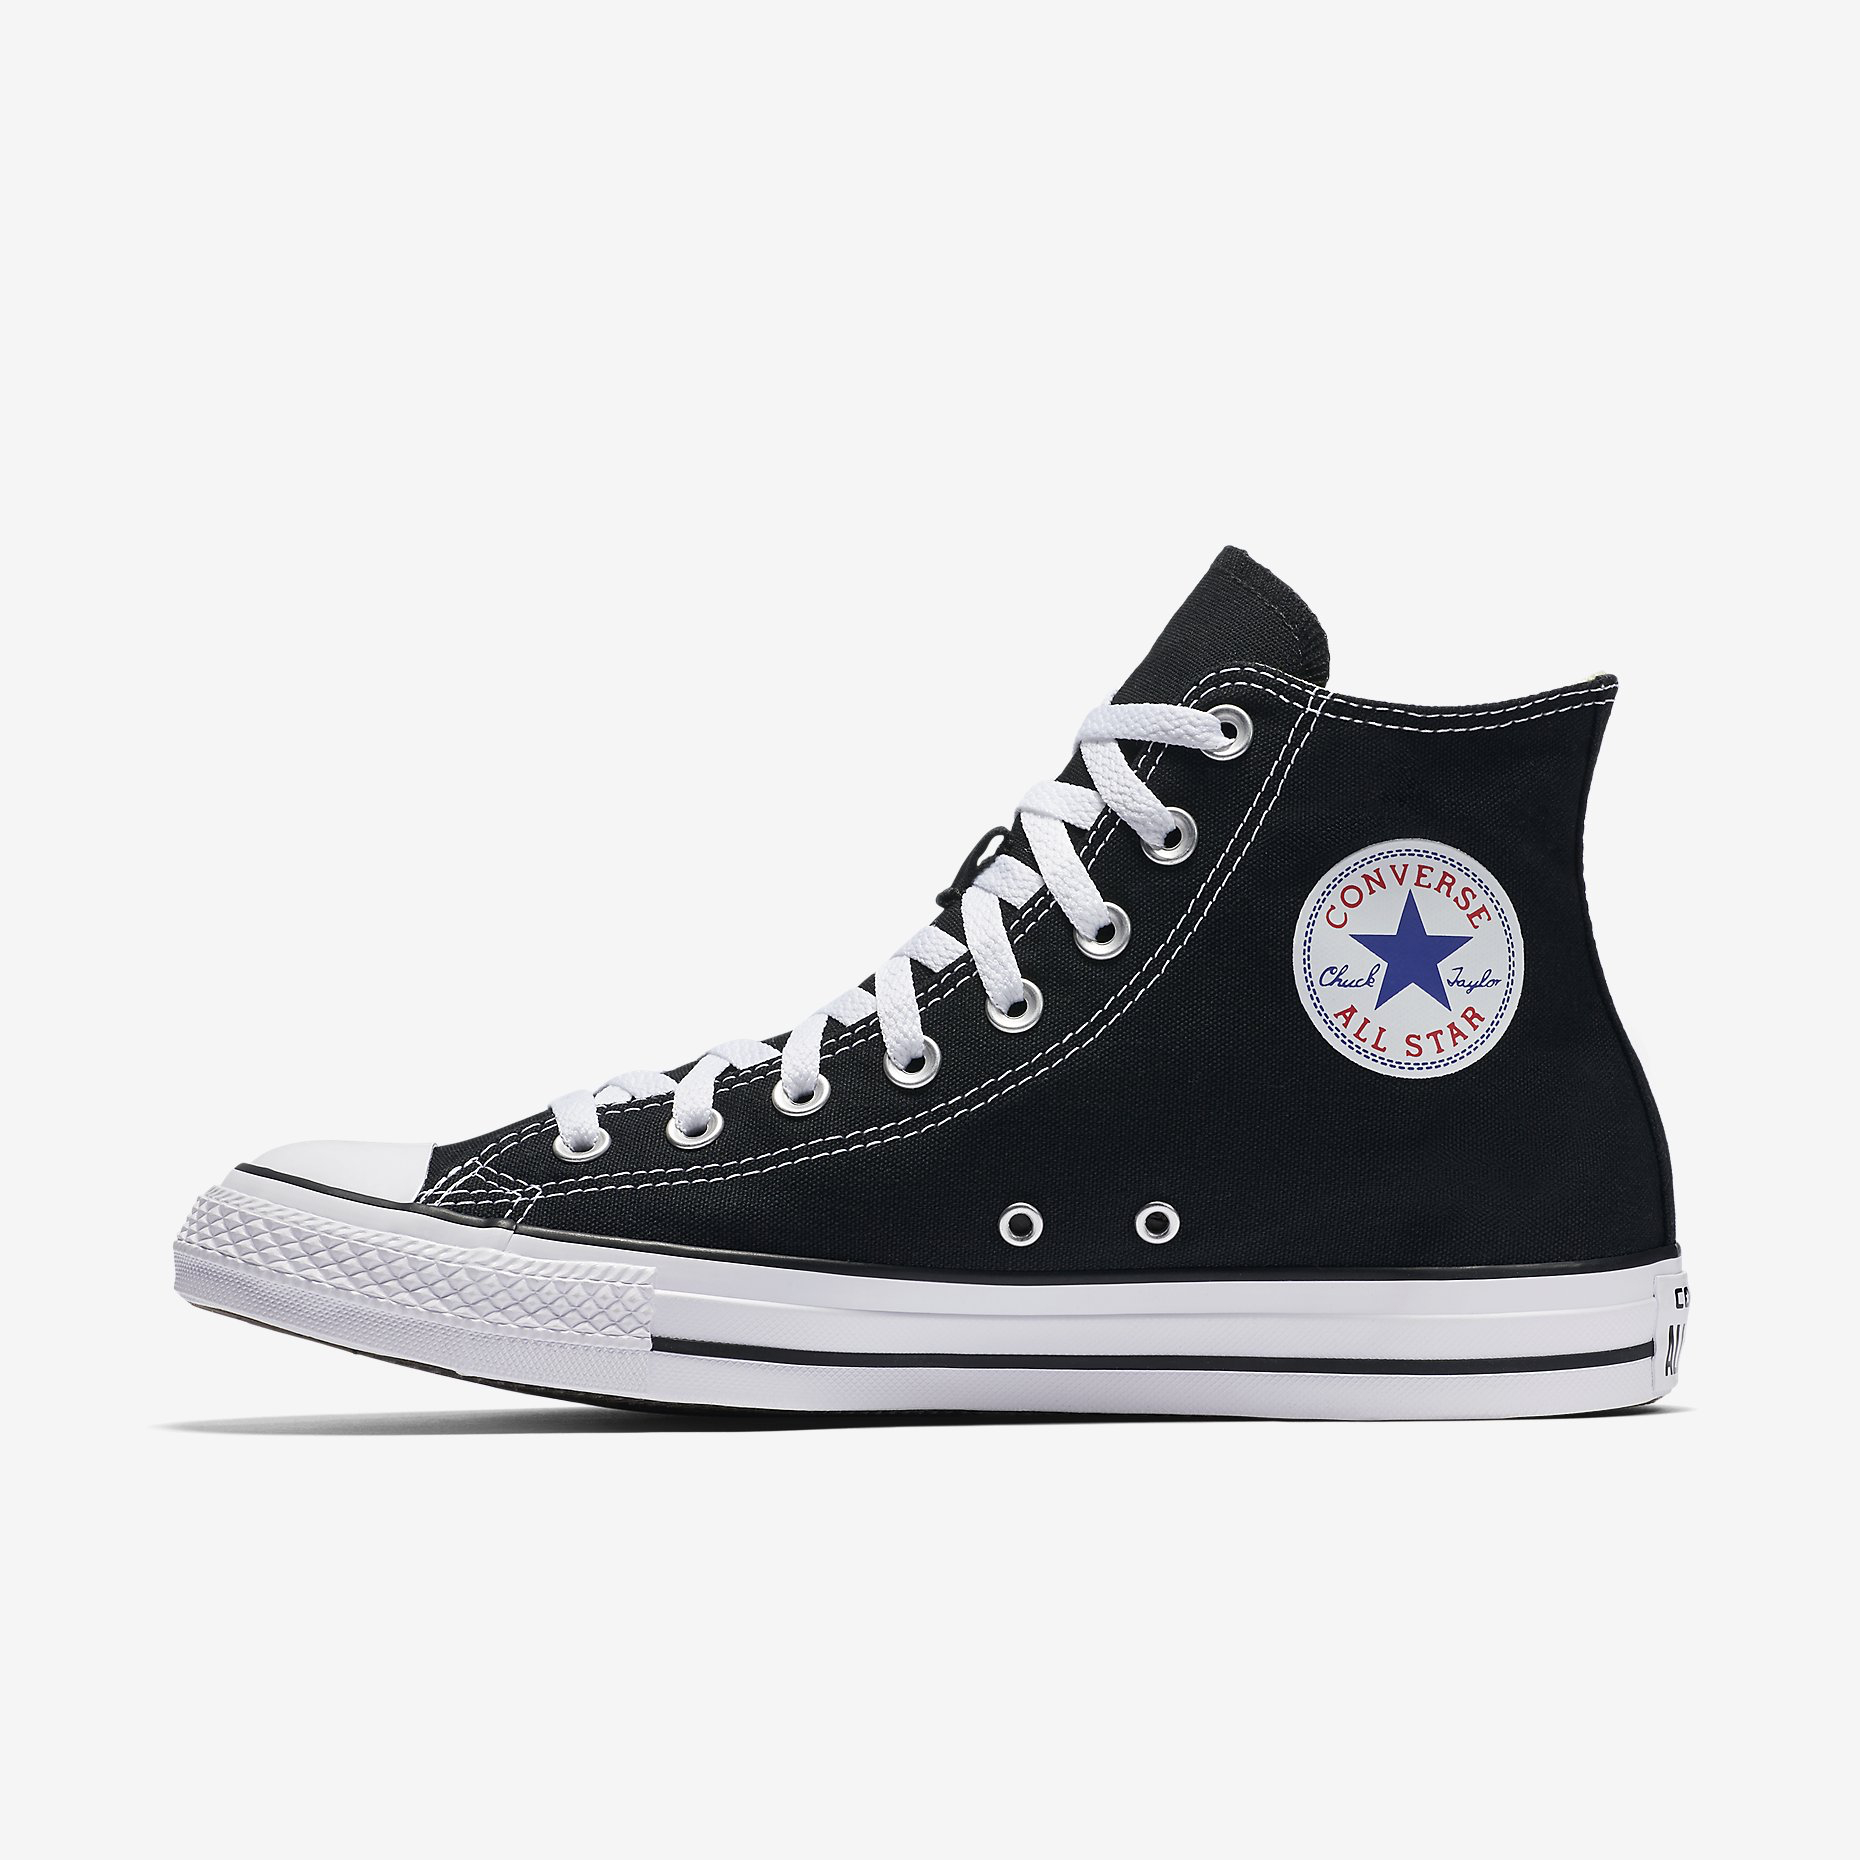 040c018be20c Converse Chuck Taylor All Star Womens High Top Black in 2019 ...